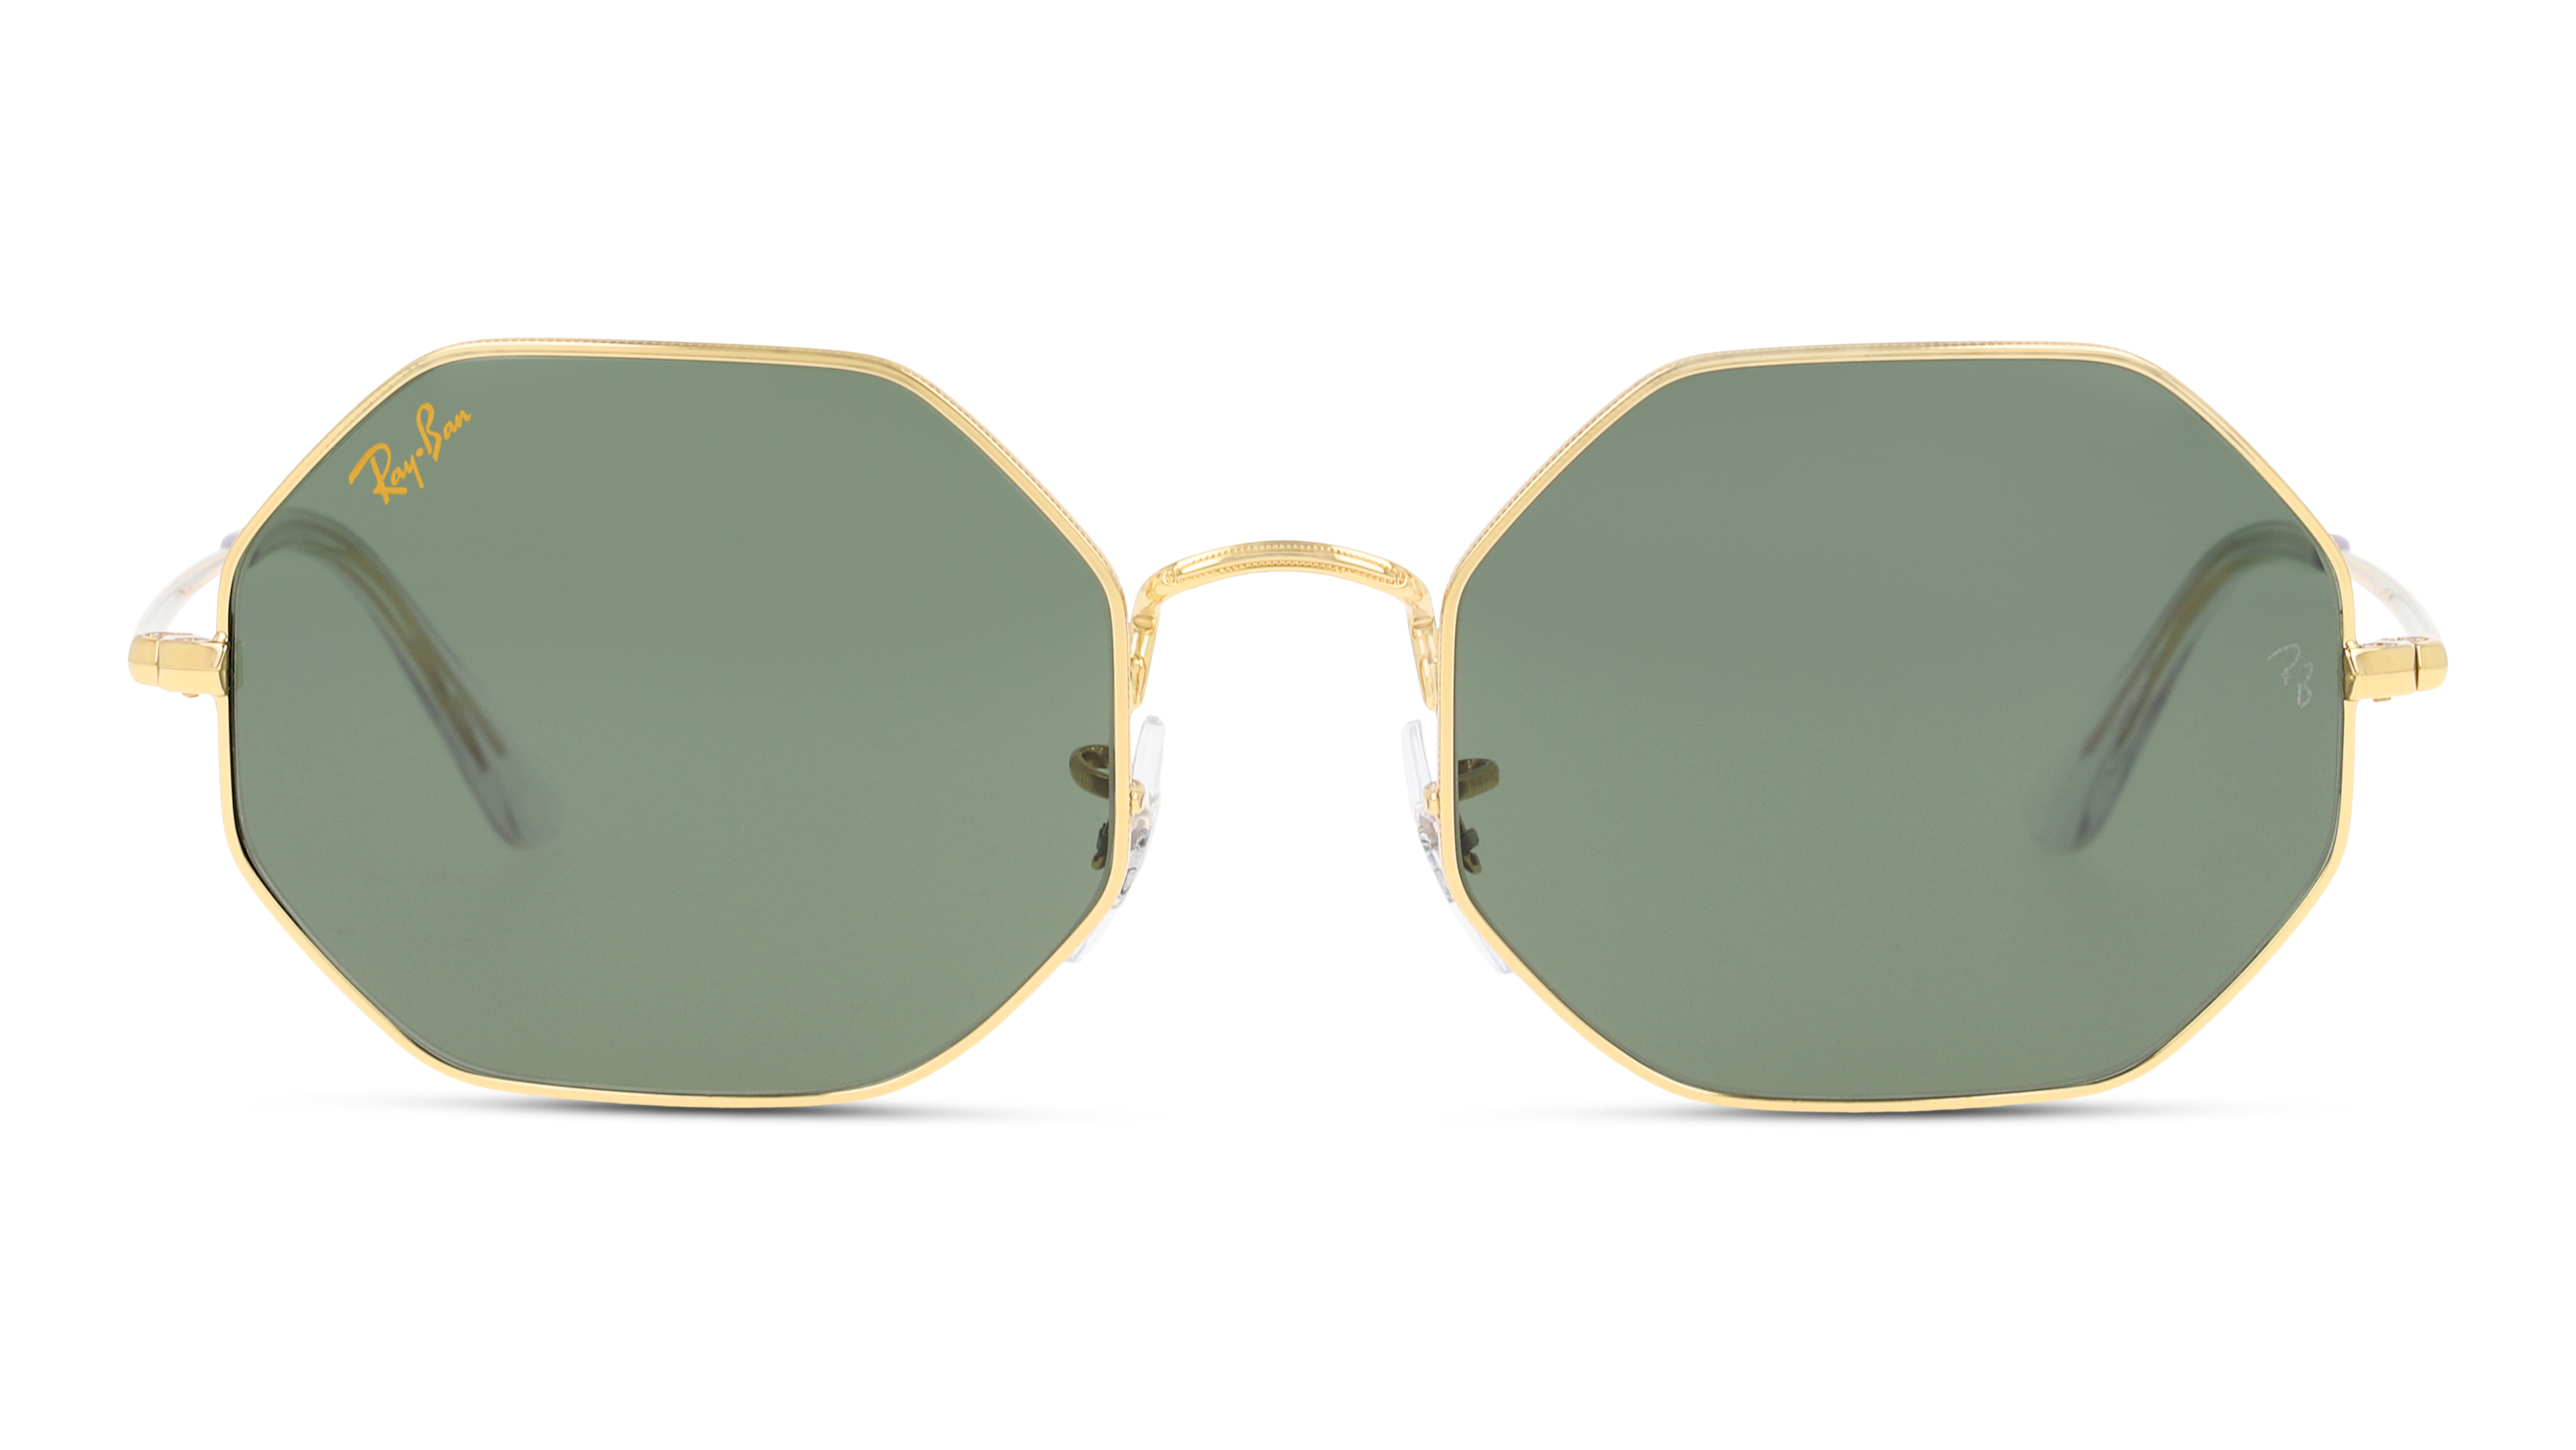 Front Ray-Ban Ray-Ban 0RB1972 919631 54/19 Goud/Groen